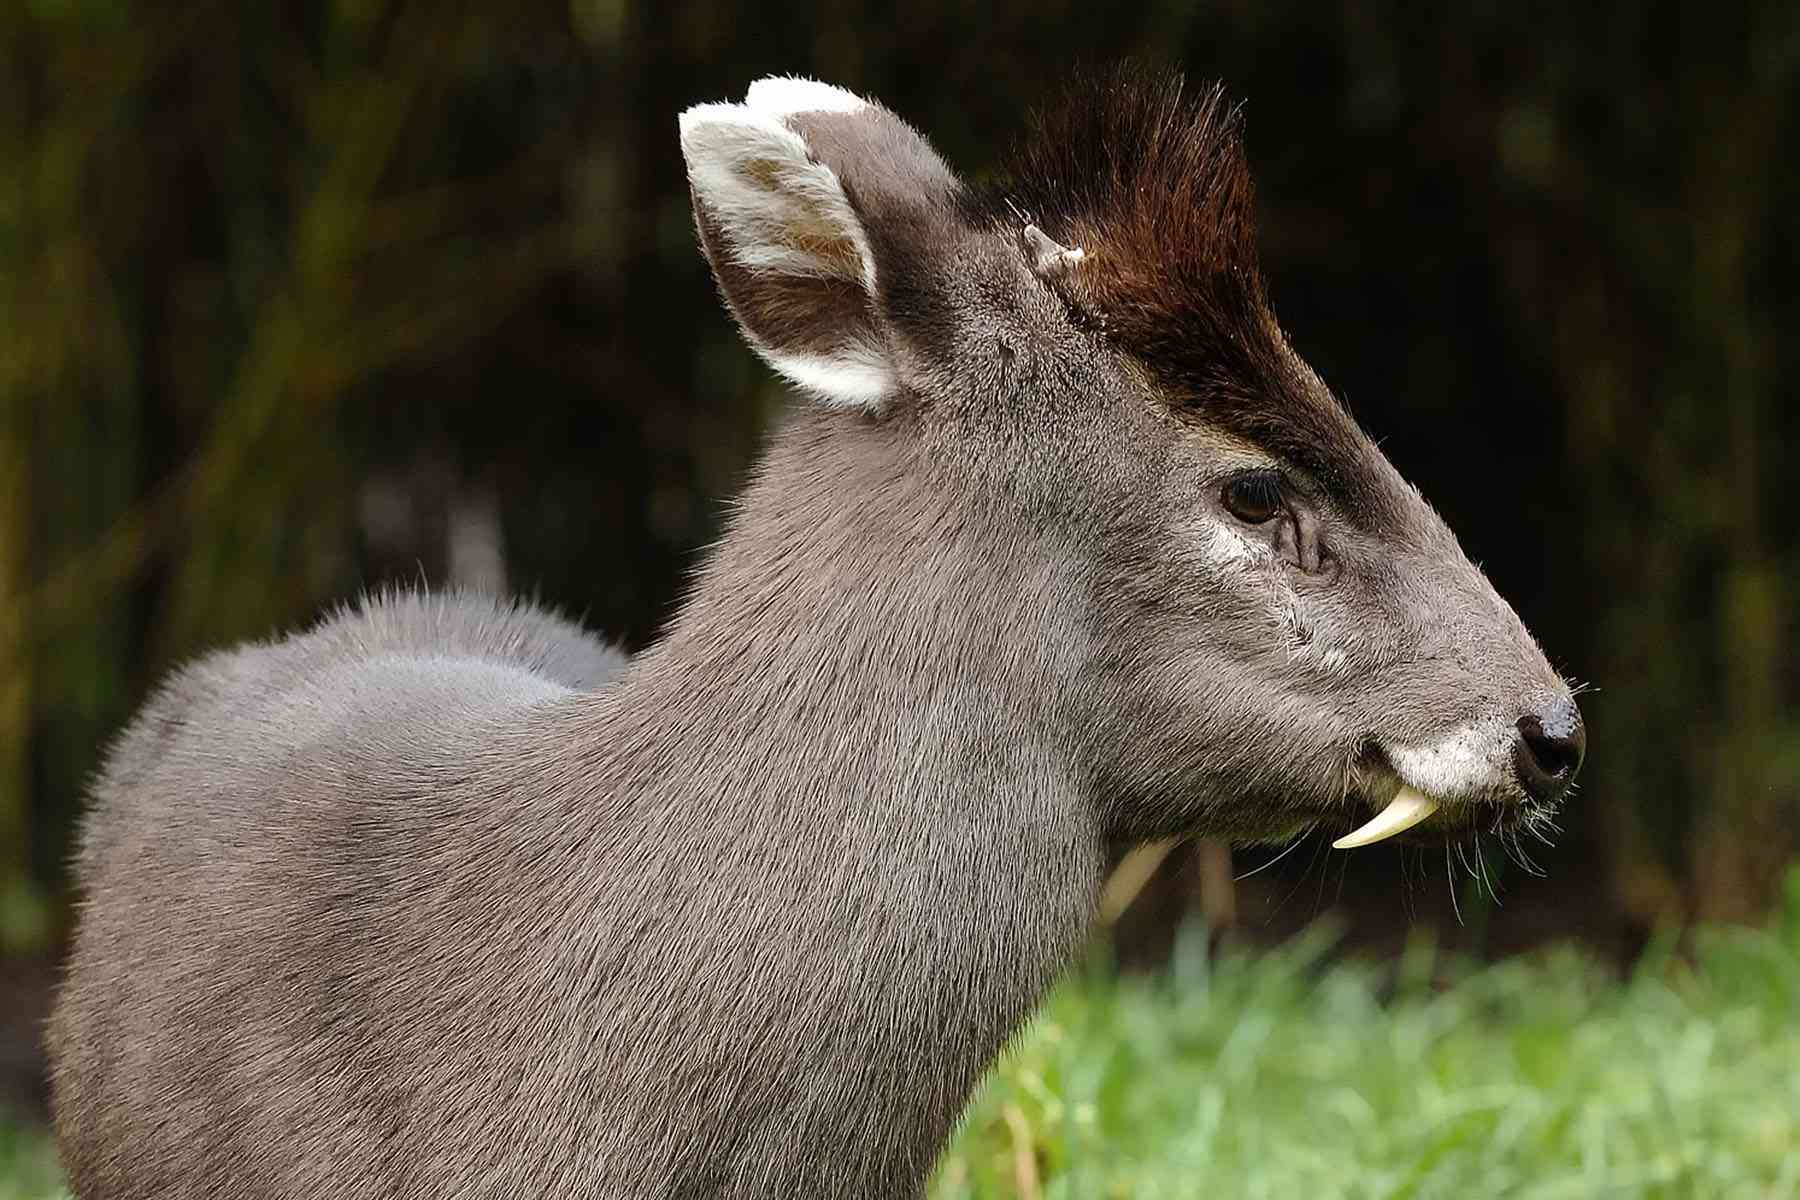 male tufted deer with small horns and and protruding fangs